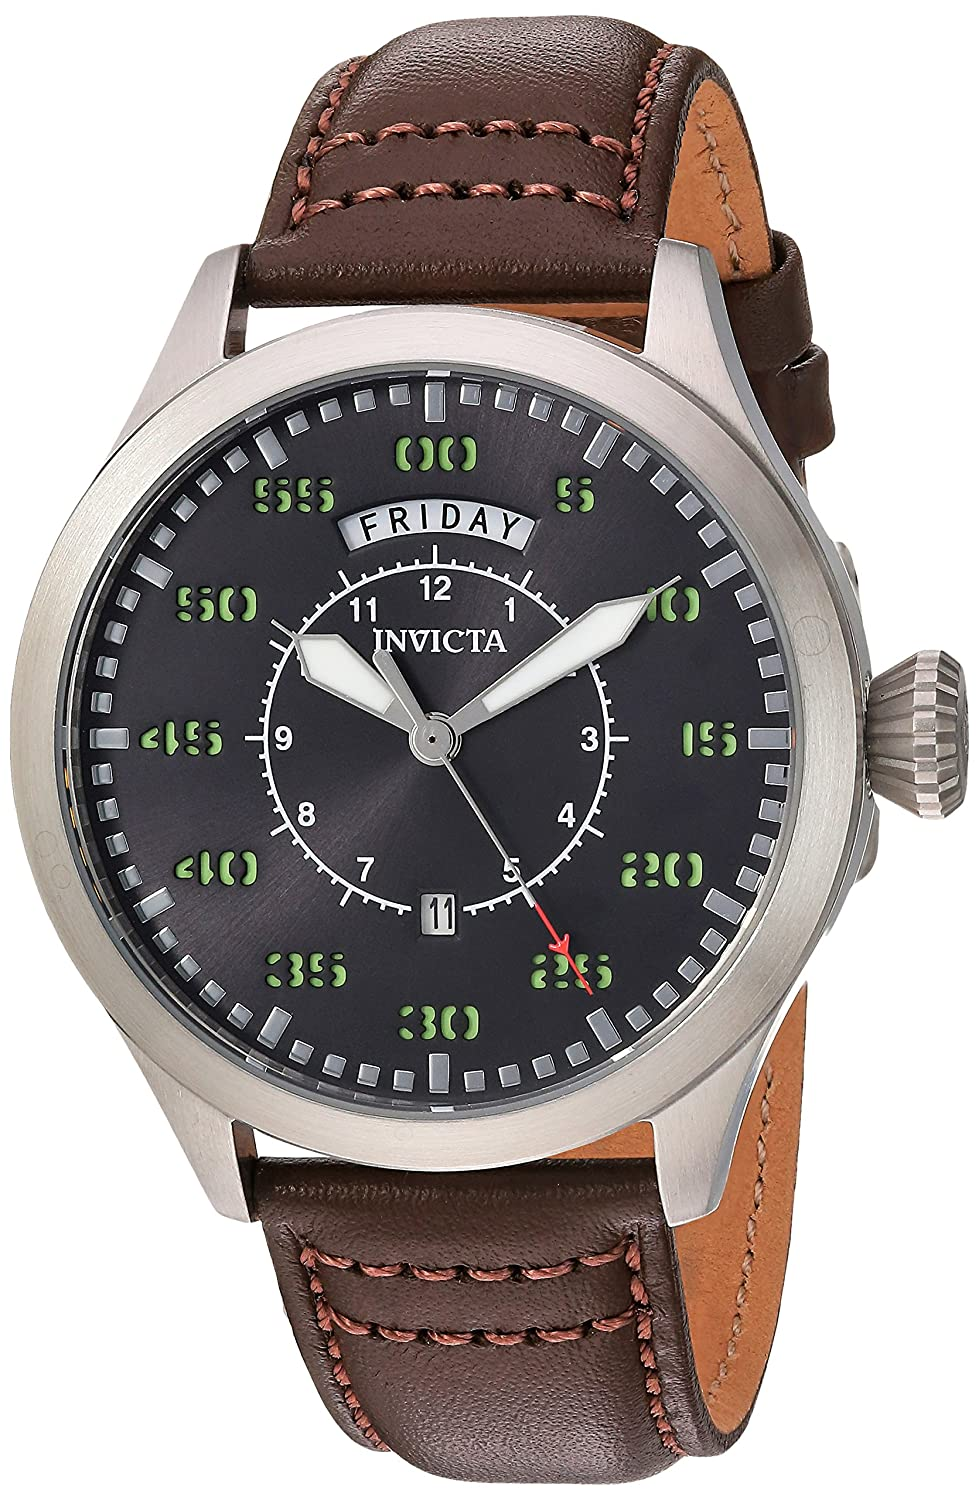 Invicta Men s Aviator Stainless Steel Quartz Watch with Leather Calfskin Strap, Brown, 22 Model 22973